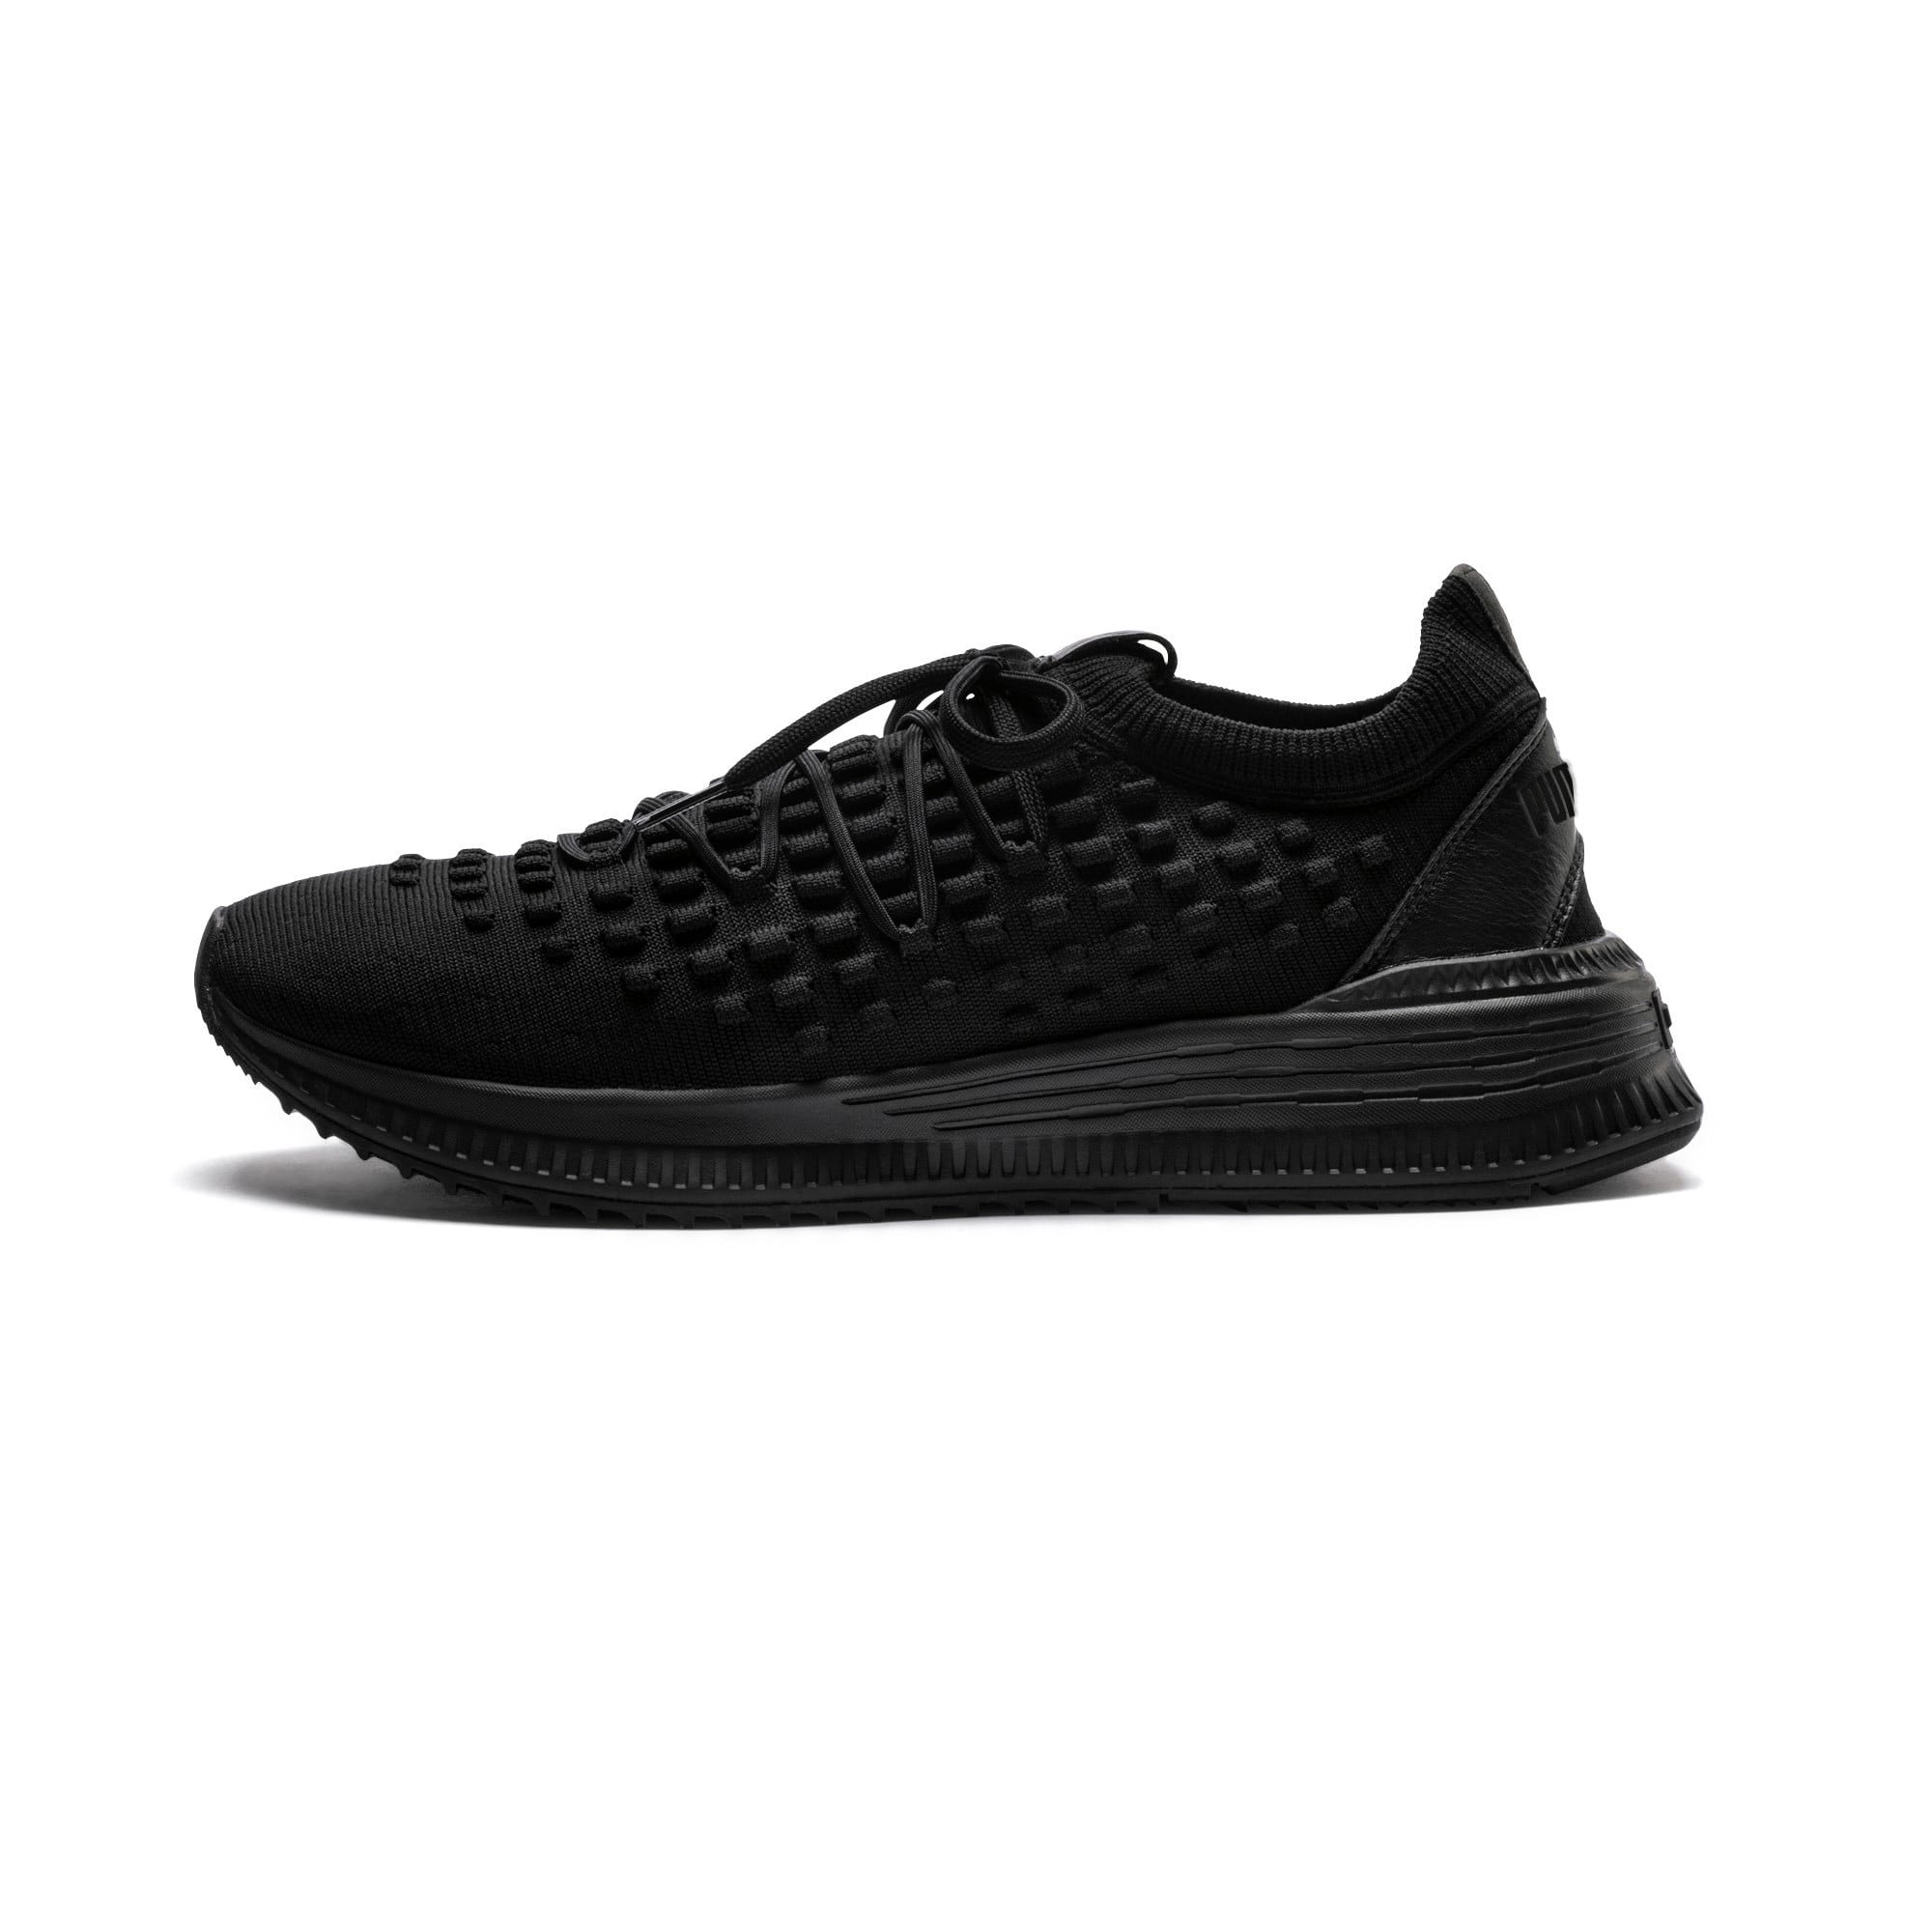 Thumbnail 1 of Evolution AVID FUSEFIT Sneakers, Puma Black-Puma Black-Black, medium